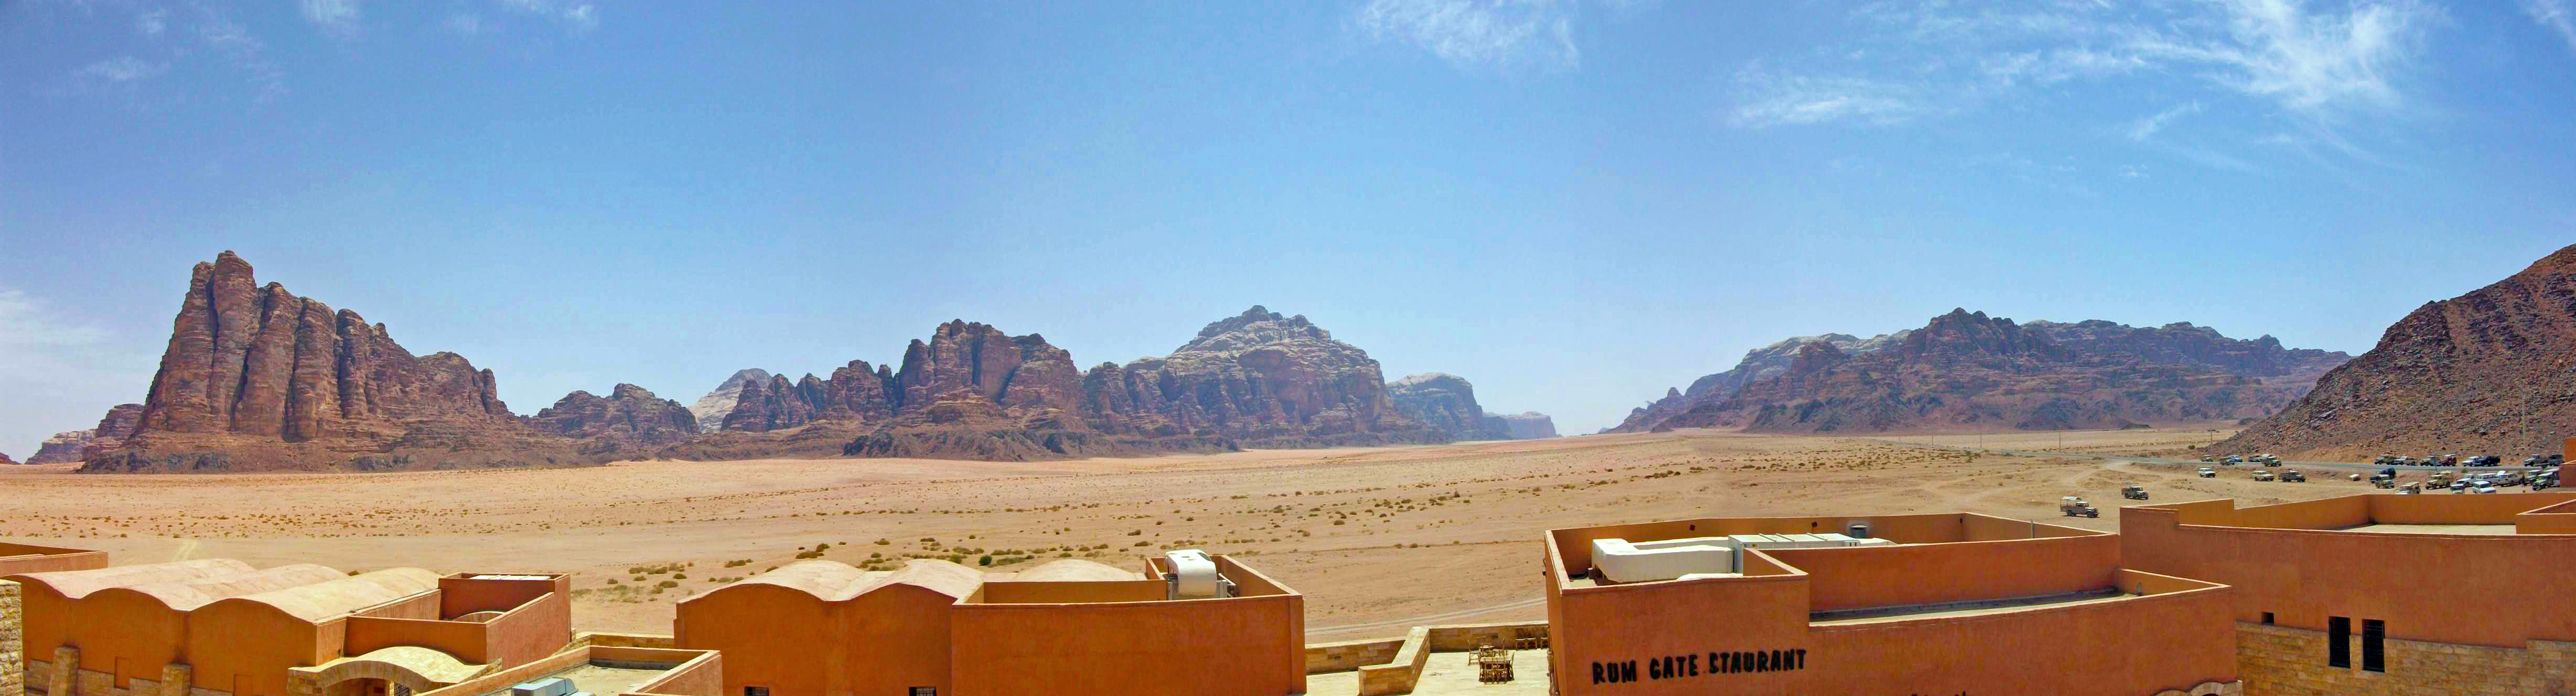 File wadi rum panorama from visitors center jpg